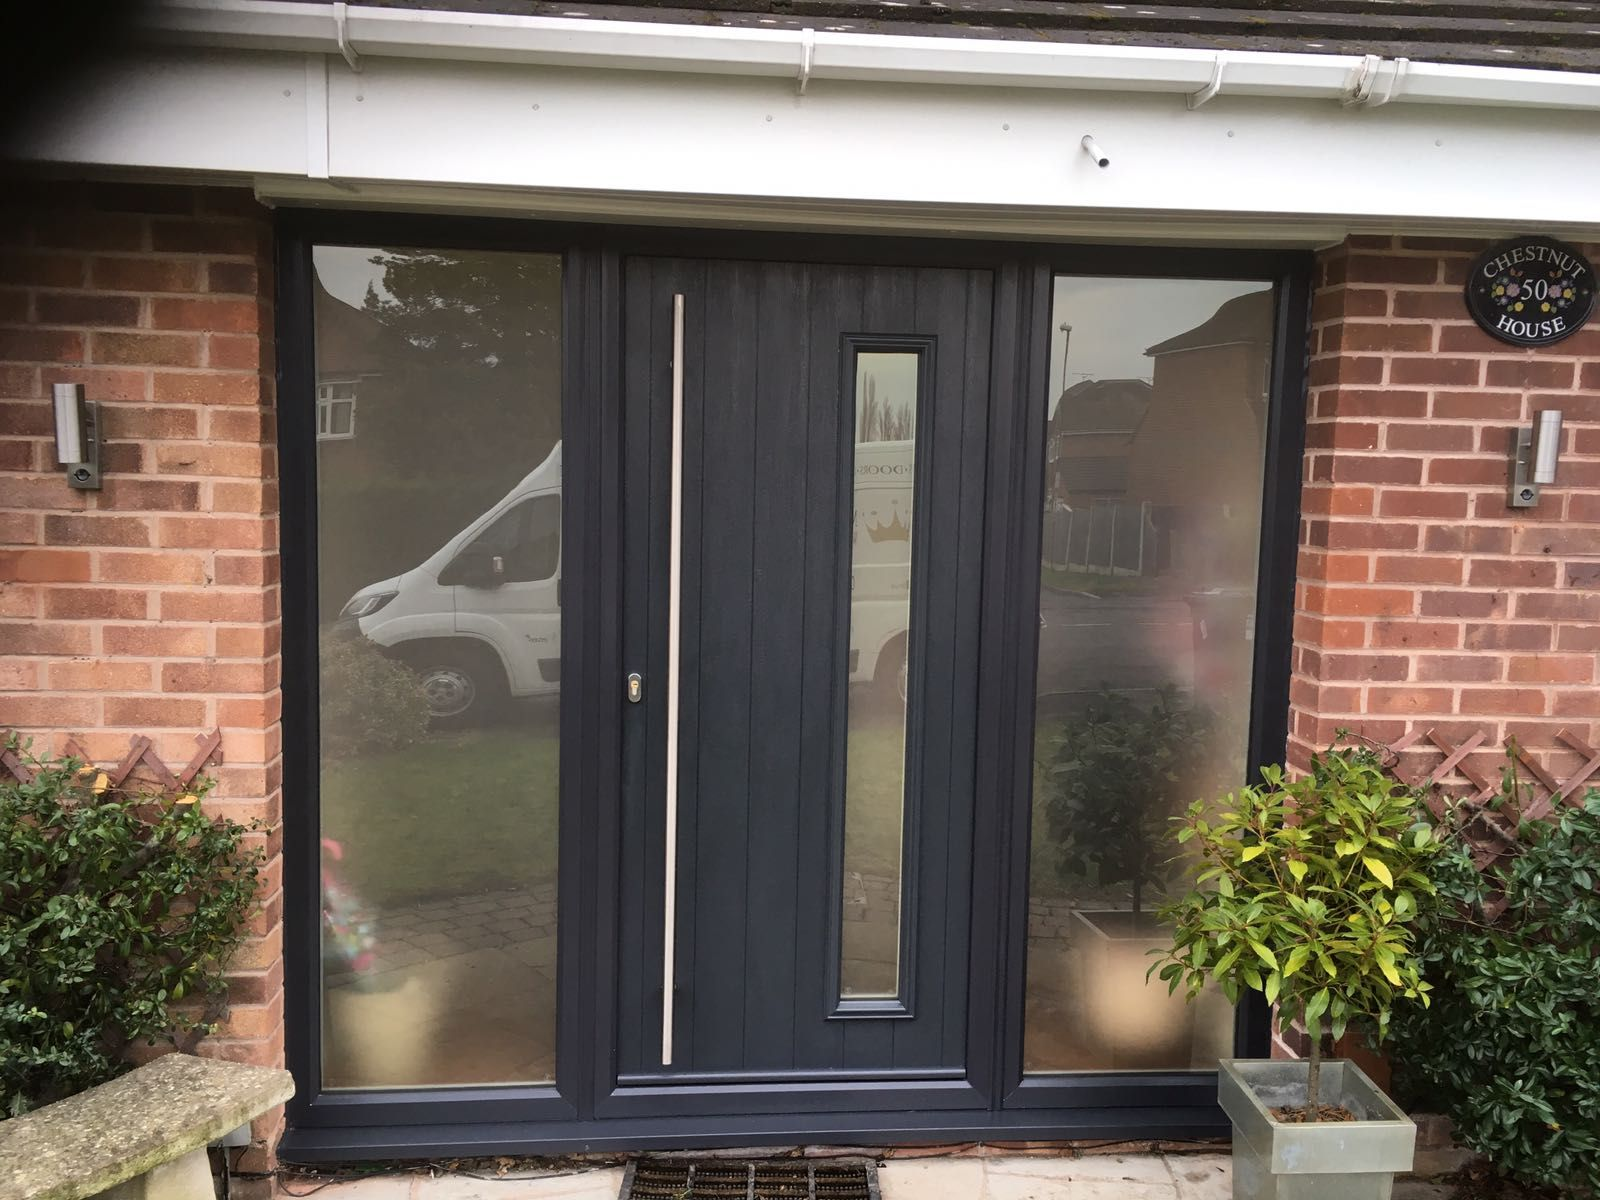 Anthracite grey brescia solidorltd composite door from for Composite windows